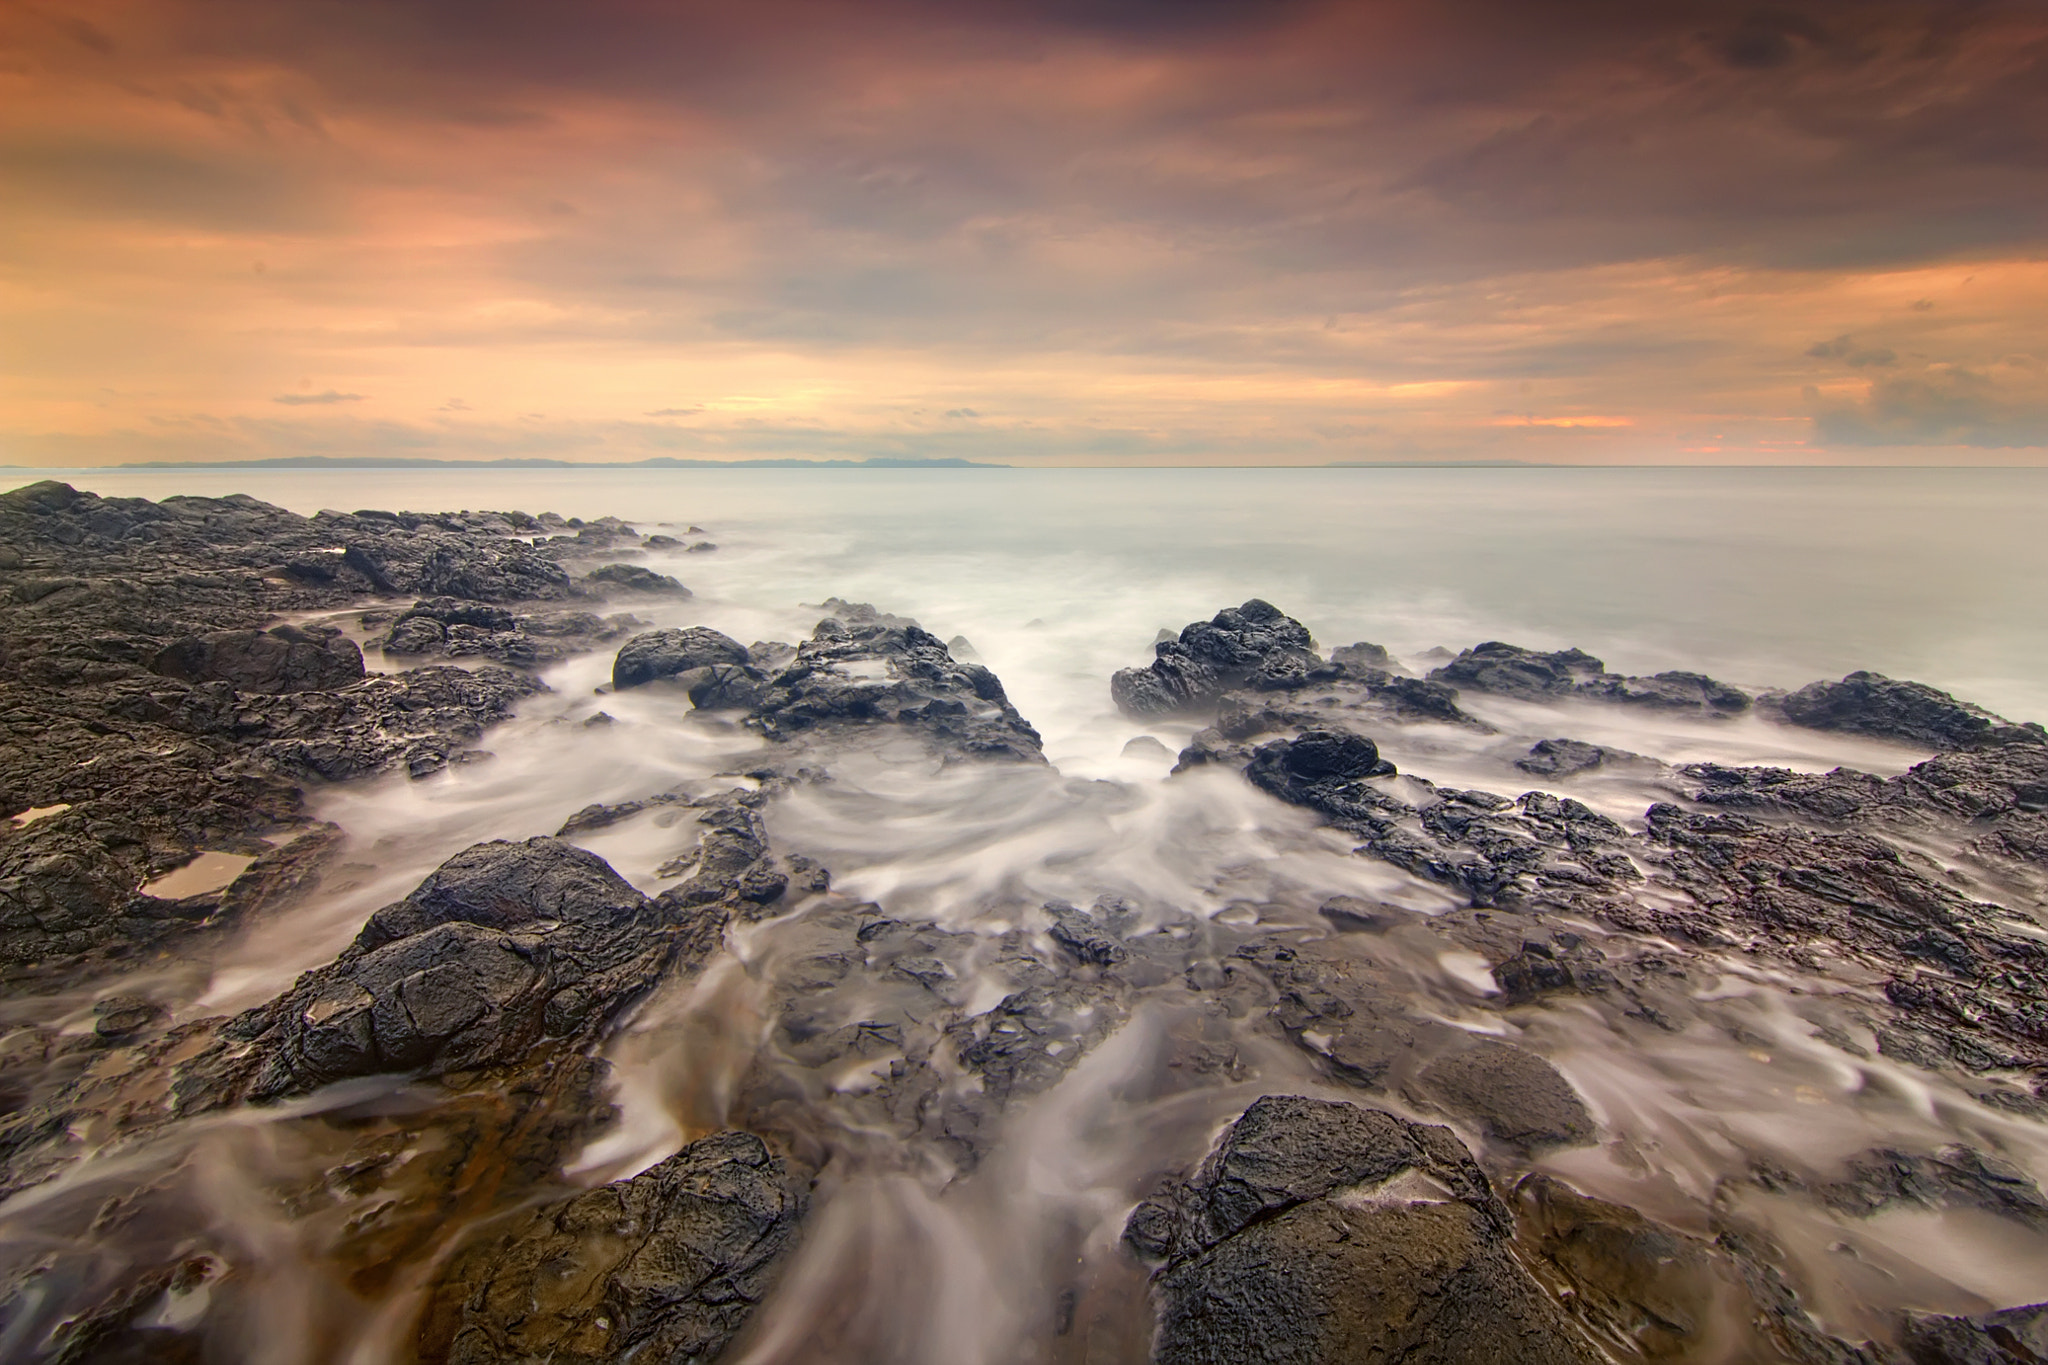 Photograph Kaprusan Rocks by Eep Ependi on 500px